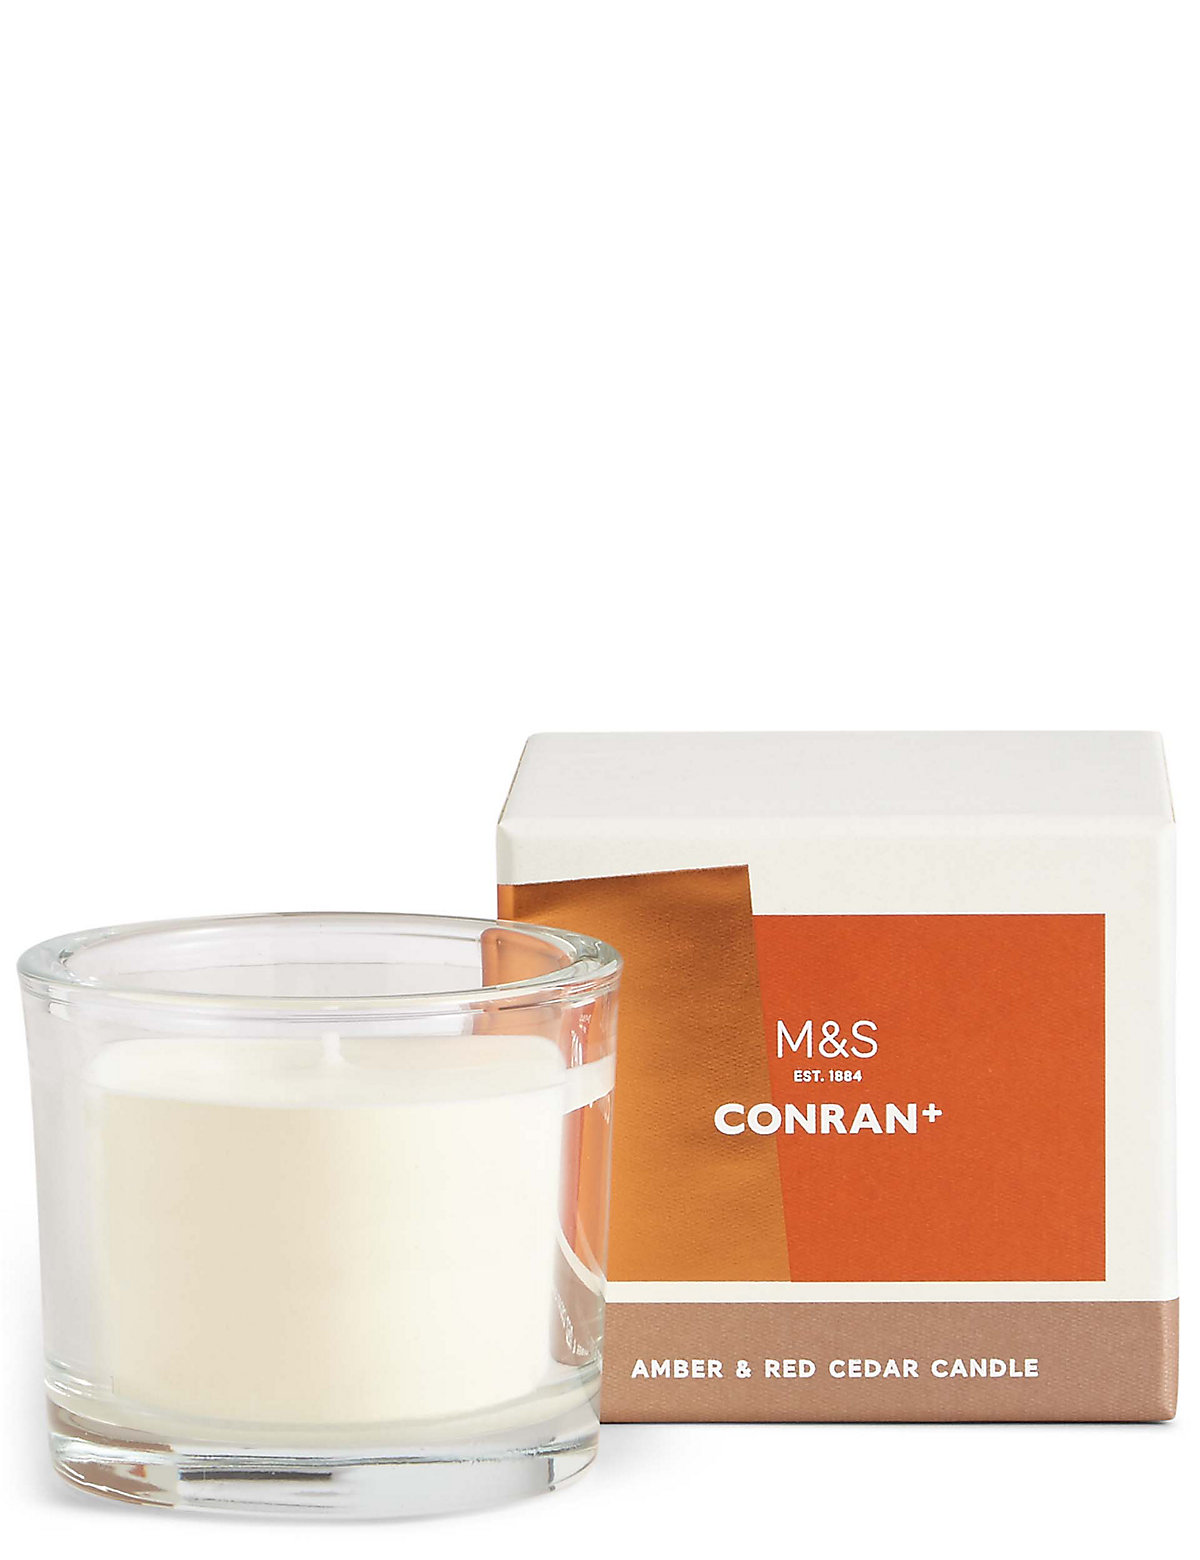 Conran Amber & Red Cedar Candle